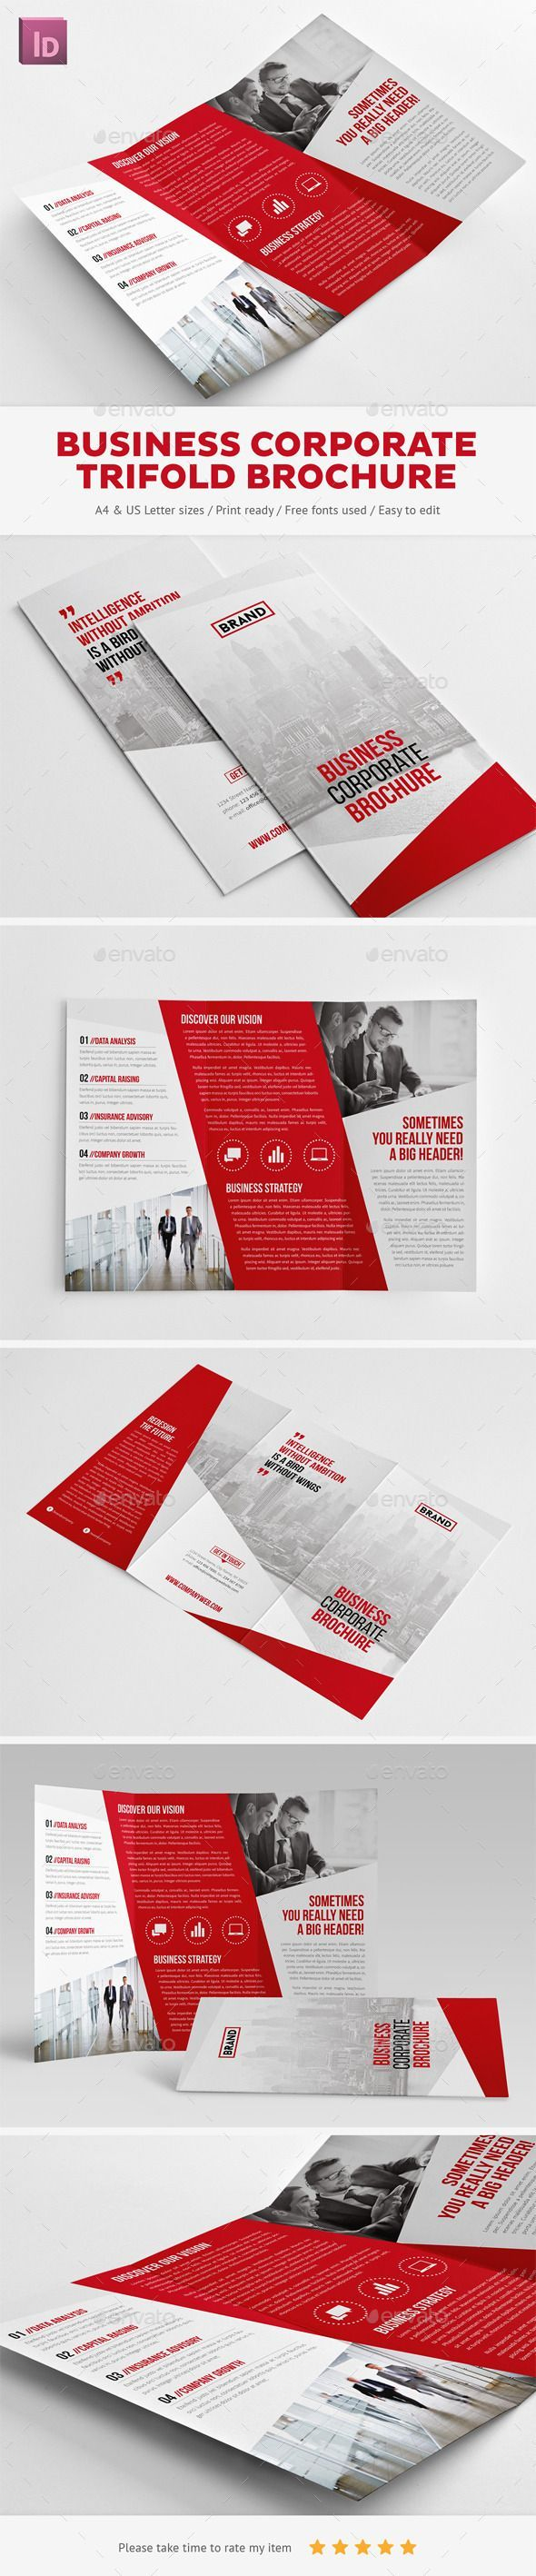 Business Corporate Trifold Brochure - Corporate Brochures http://graphicriver.net/item/business-corporate-trifold-brochure/10353710?WT.ac=portfolio&WT.z_author=Snowboy: